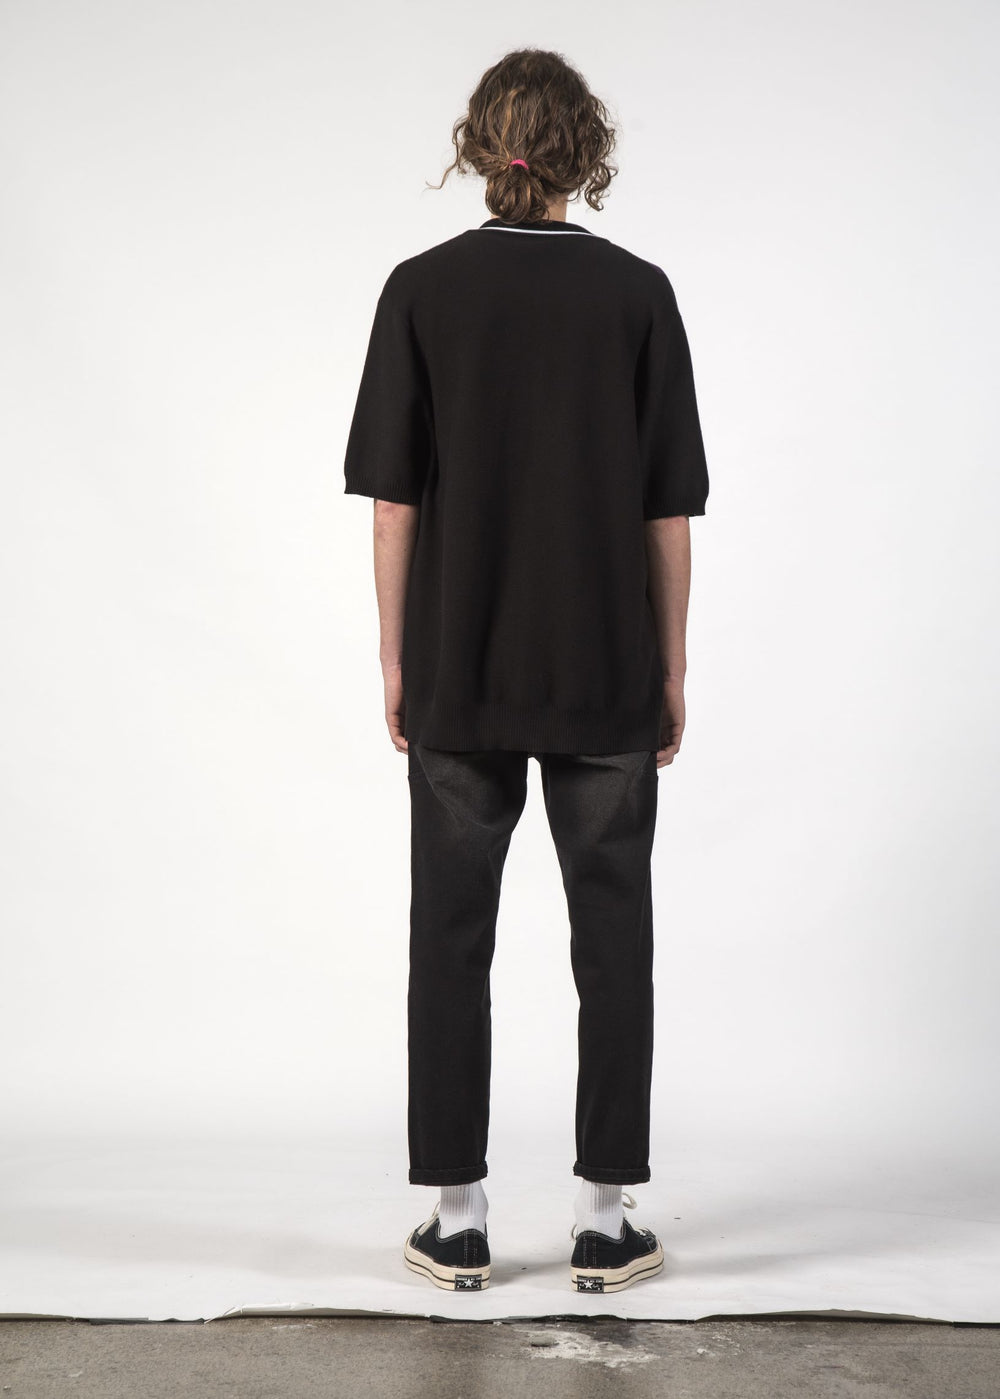 STRAY KNIT SHIRT - Black Plum